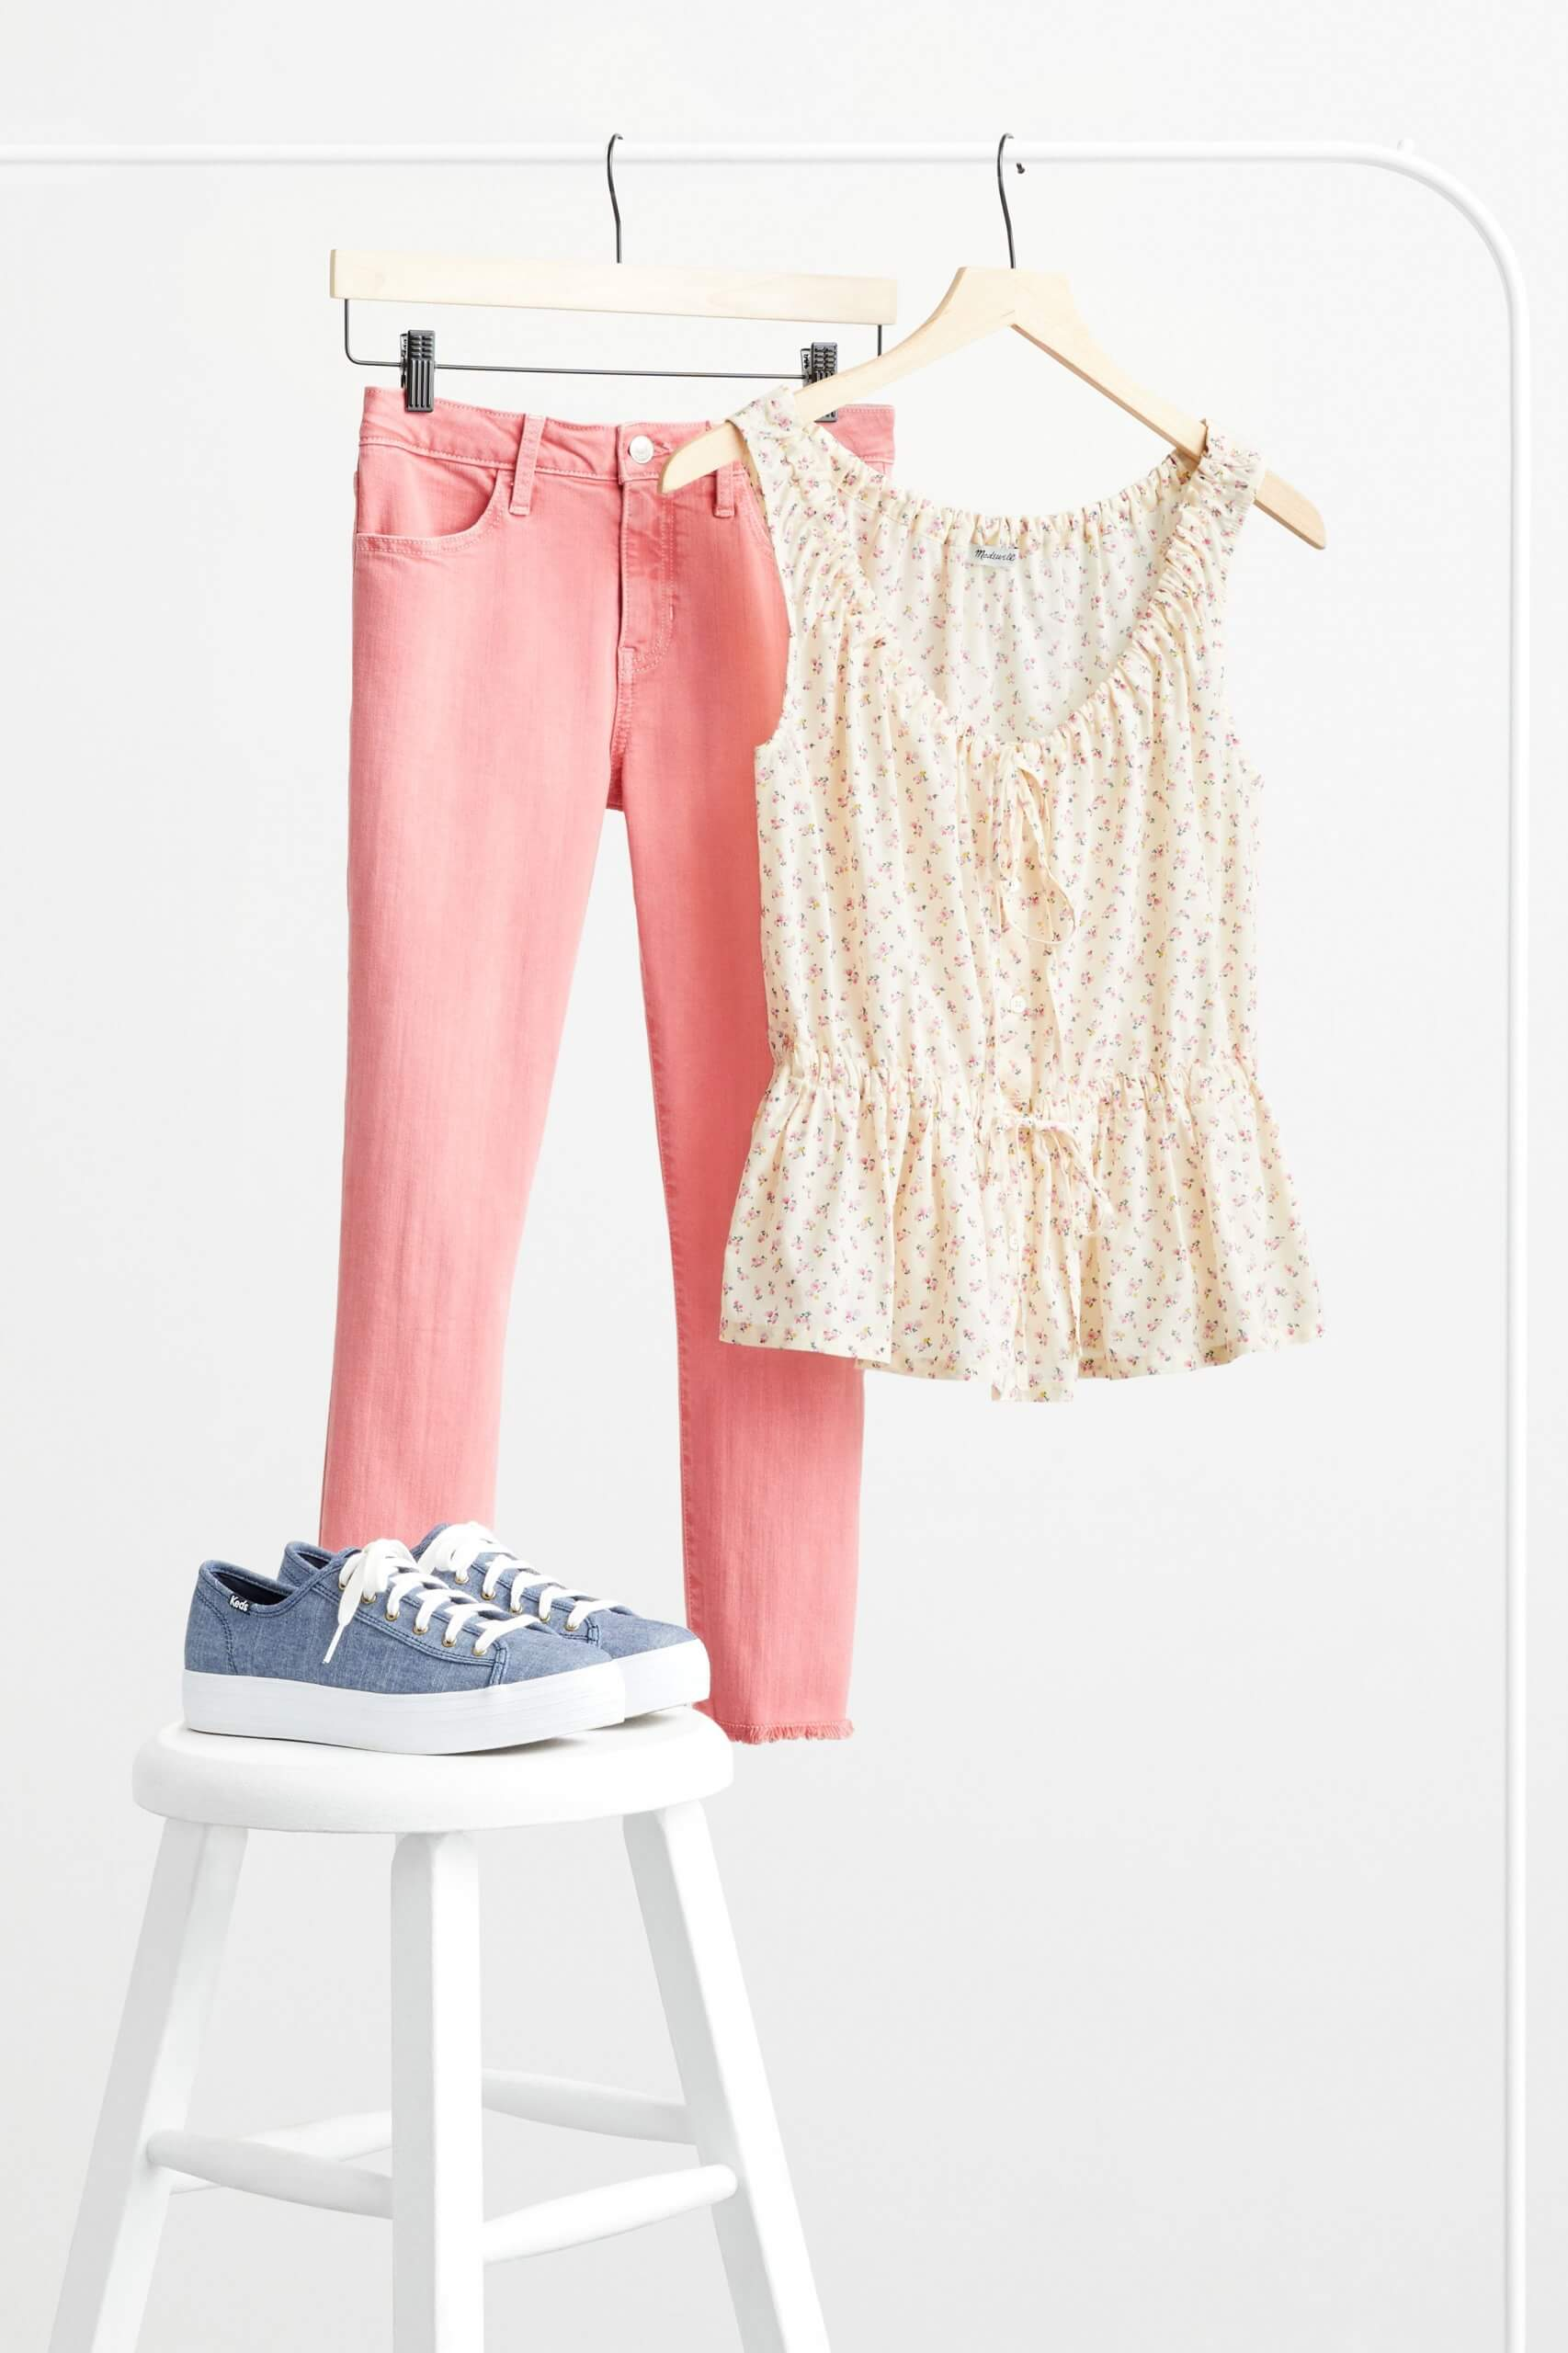 Stitch Fix Women's pink skinny jeans and yellow-patterned blouse hanging from a rack behind blue sneakers on stool.